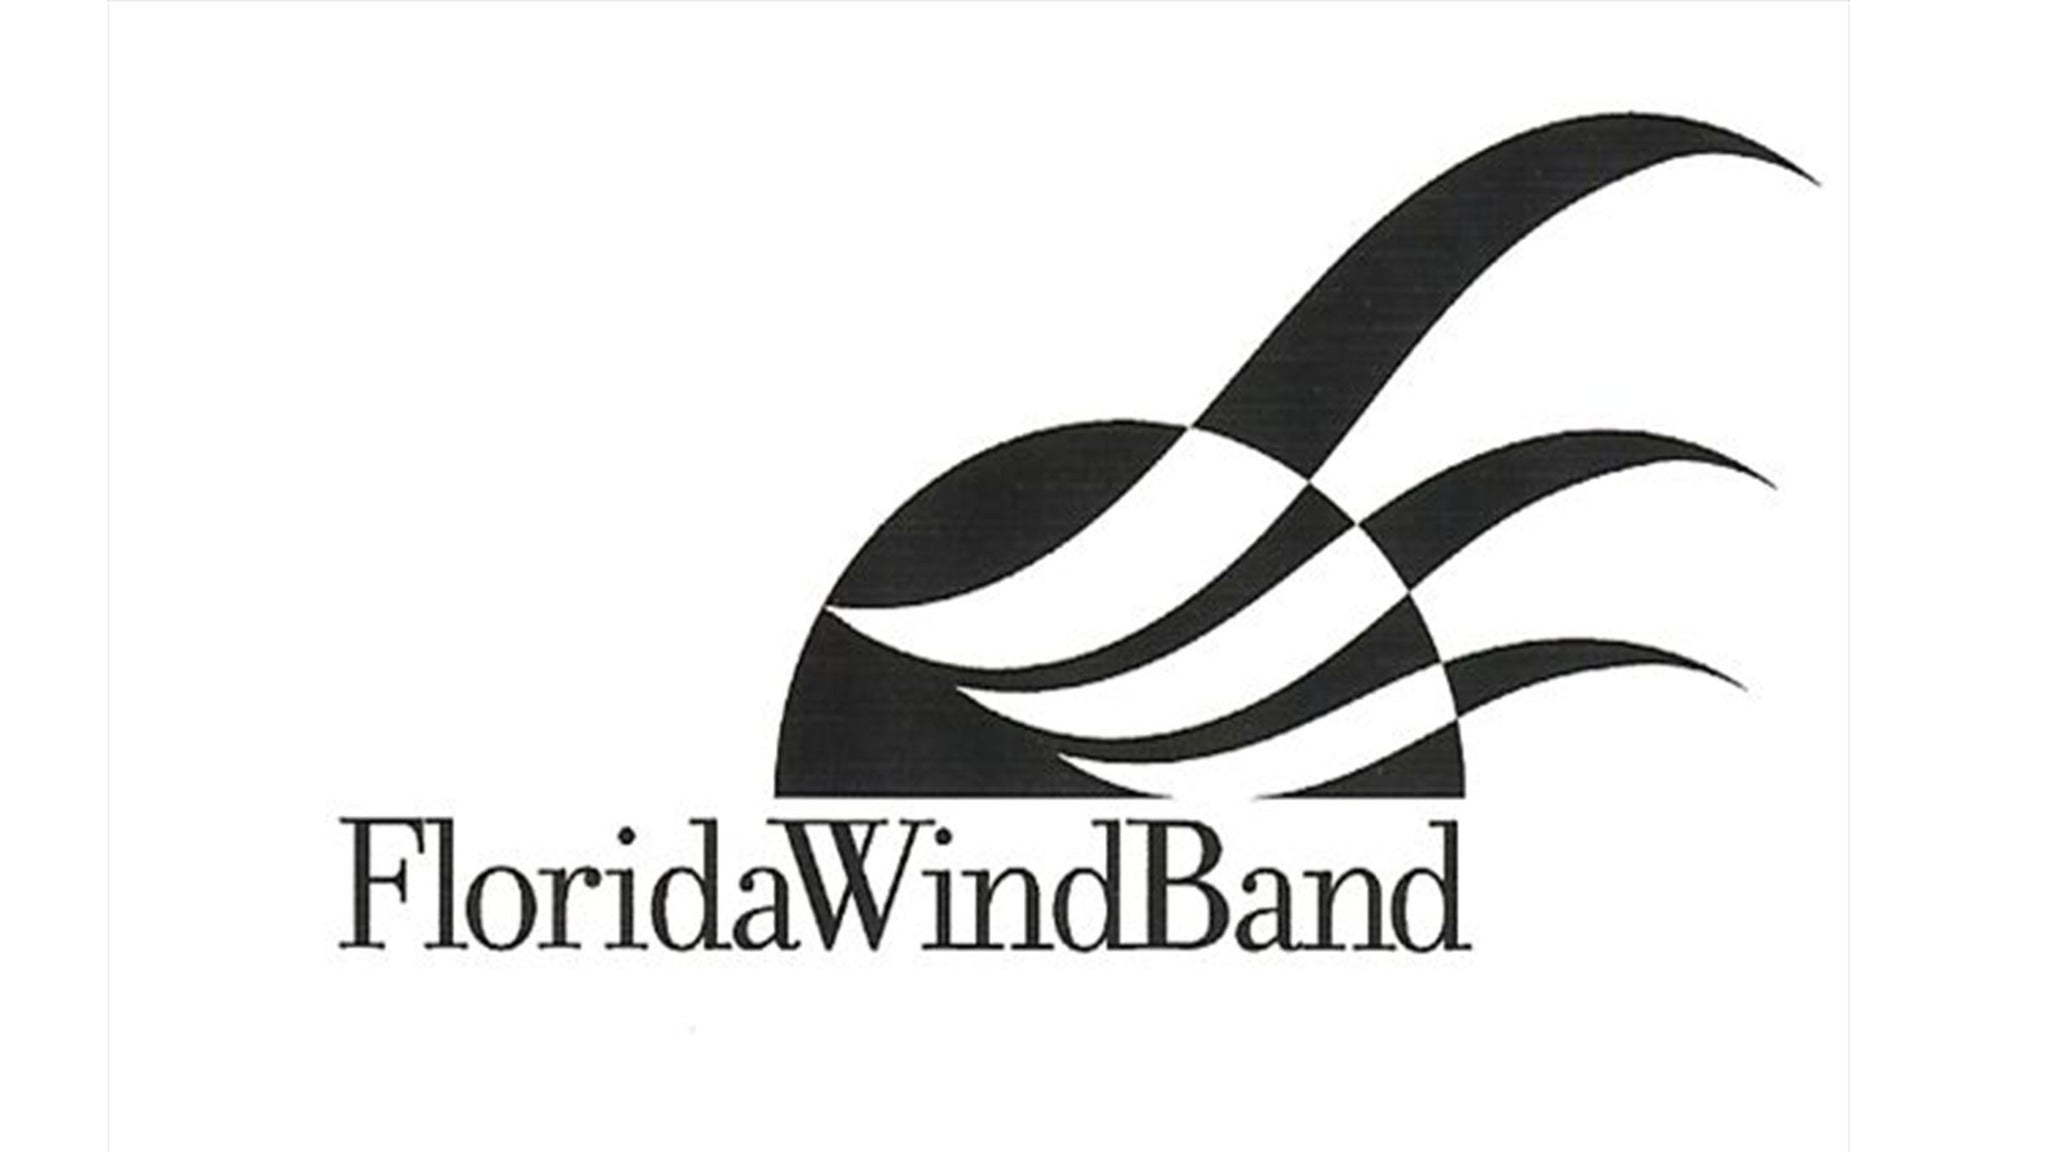 Florida Wind Band: Honor, Integrity And Service